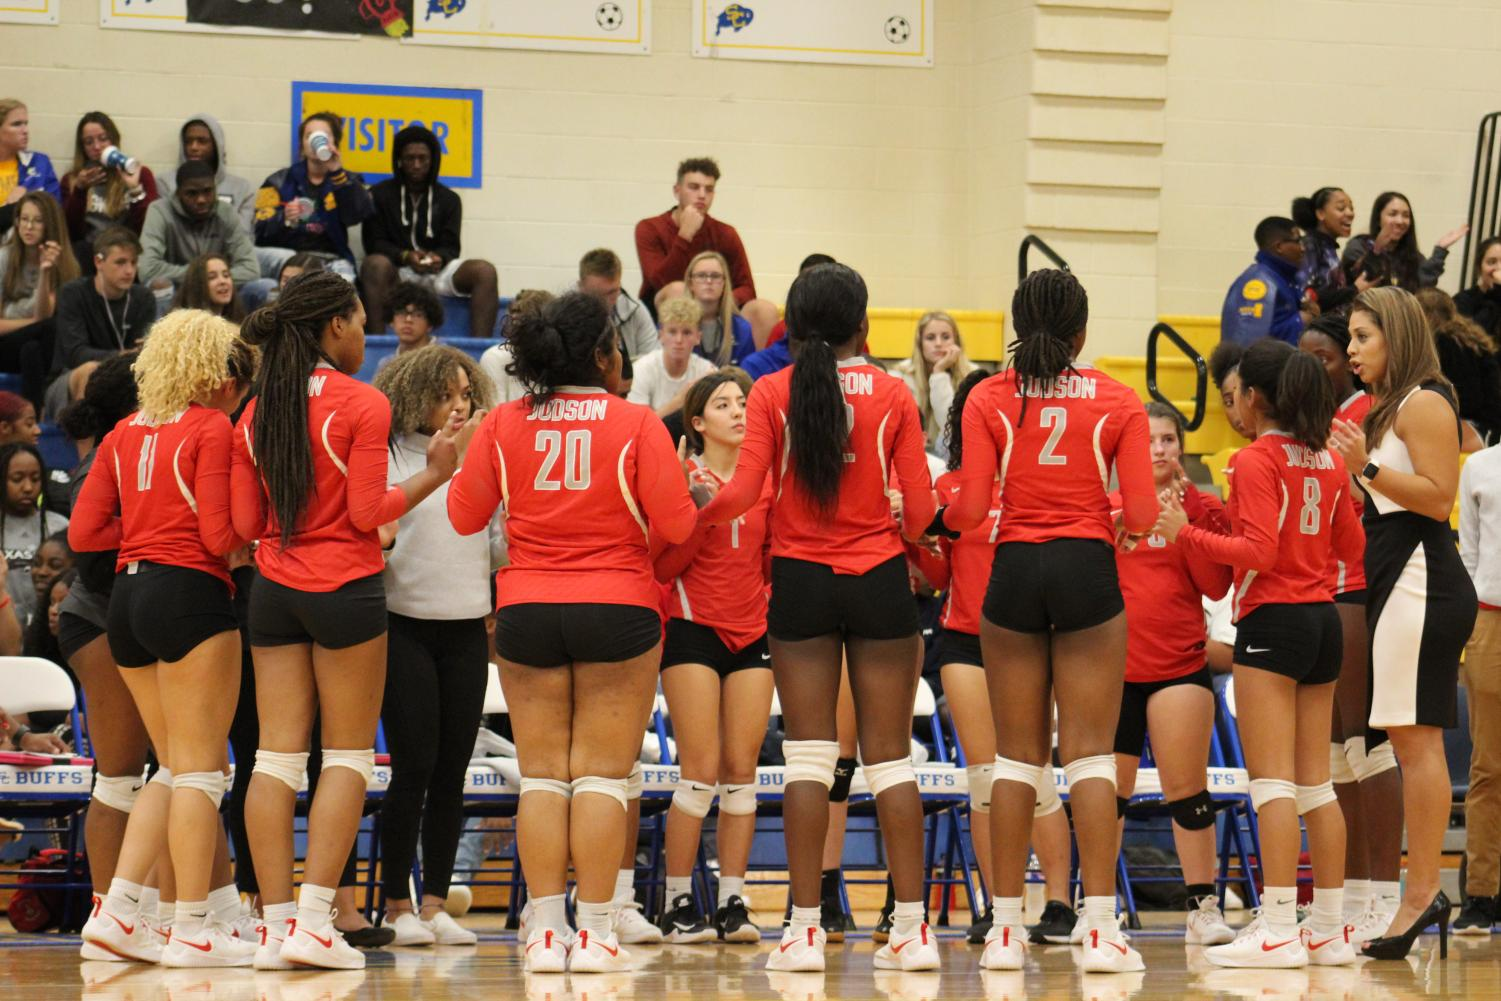 Volleyball Coach De Lo Santos motivates the Lady Rockets during a timeout. The Rockets fell to the Clemens Buffaloes 0-3.